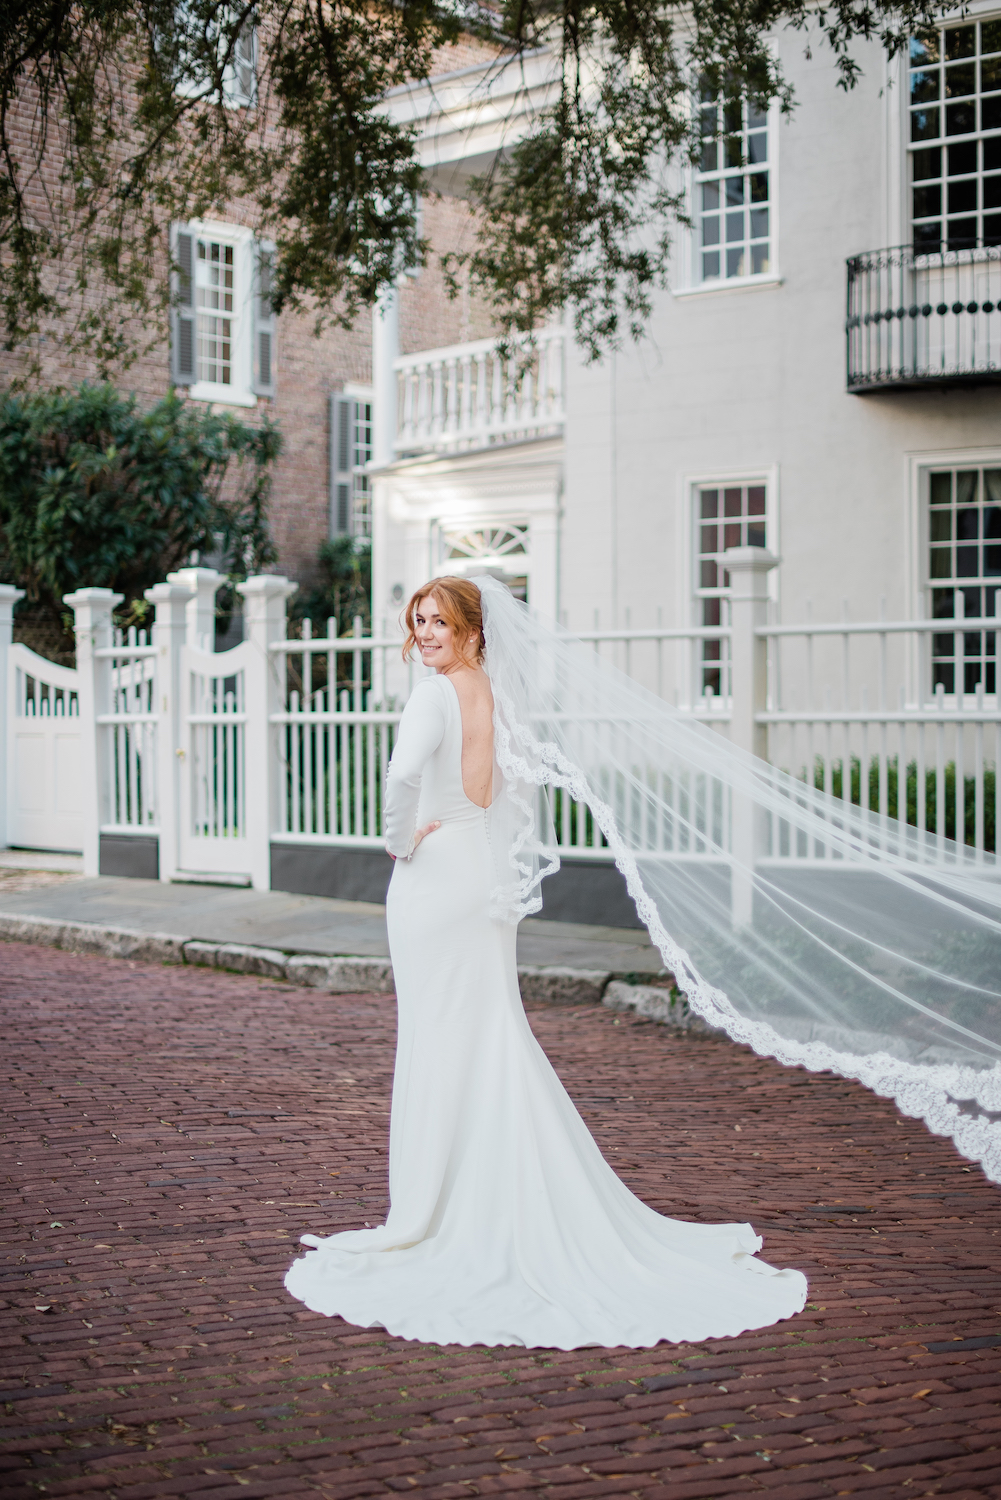 This is Kelsey's favorite veil photo. It is easy to understand why.